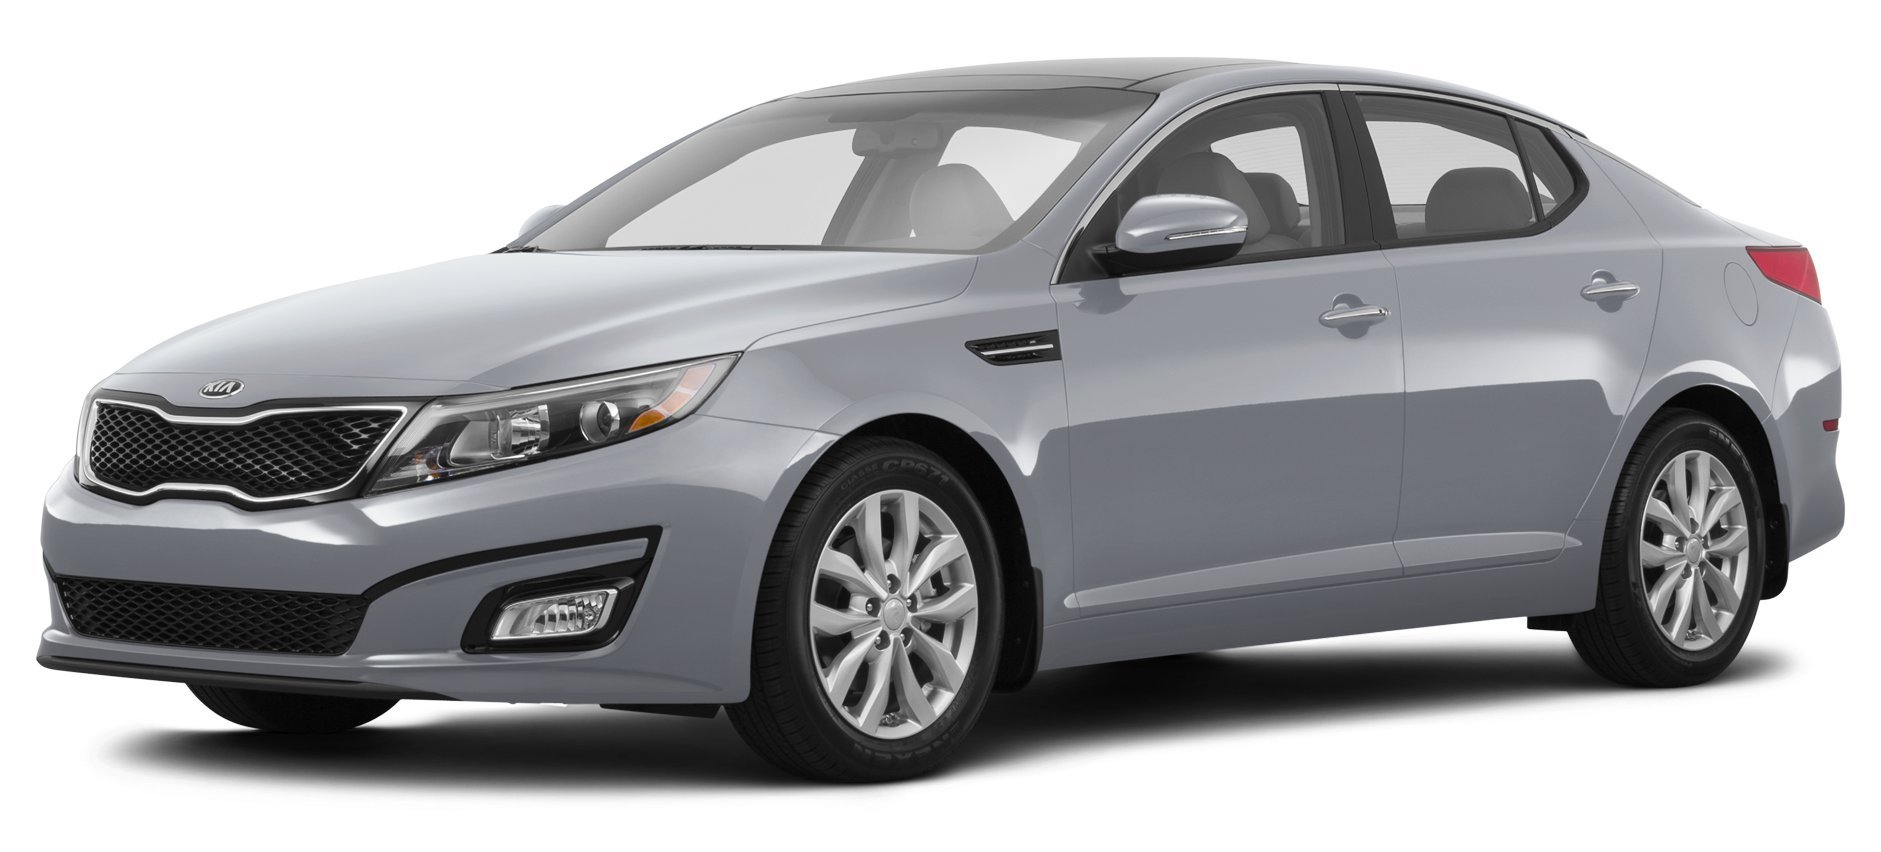 optima hybrid car spondent kia